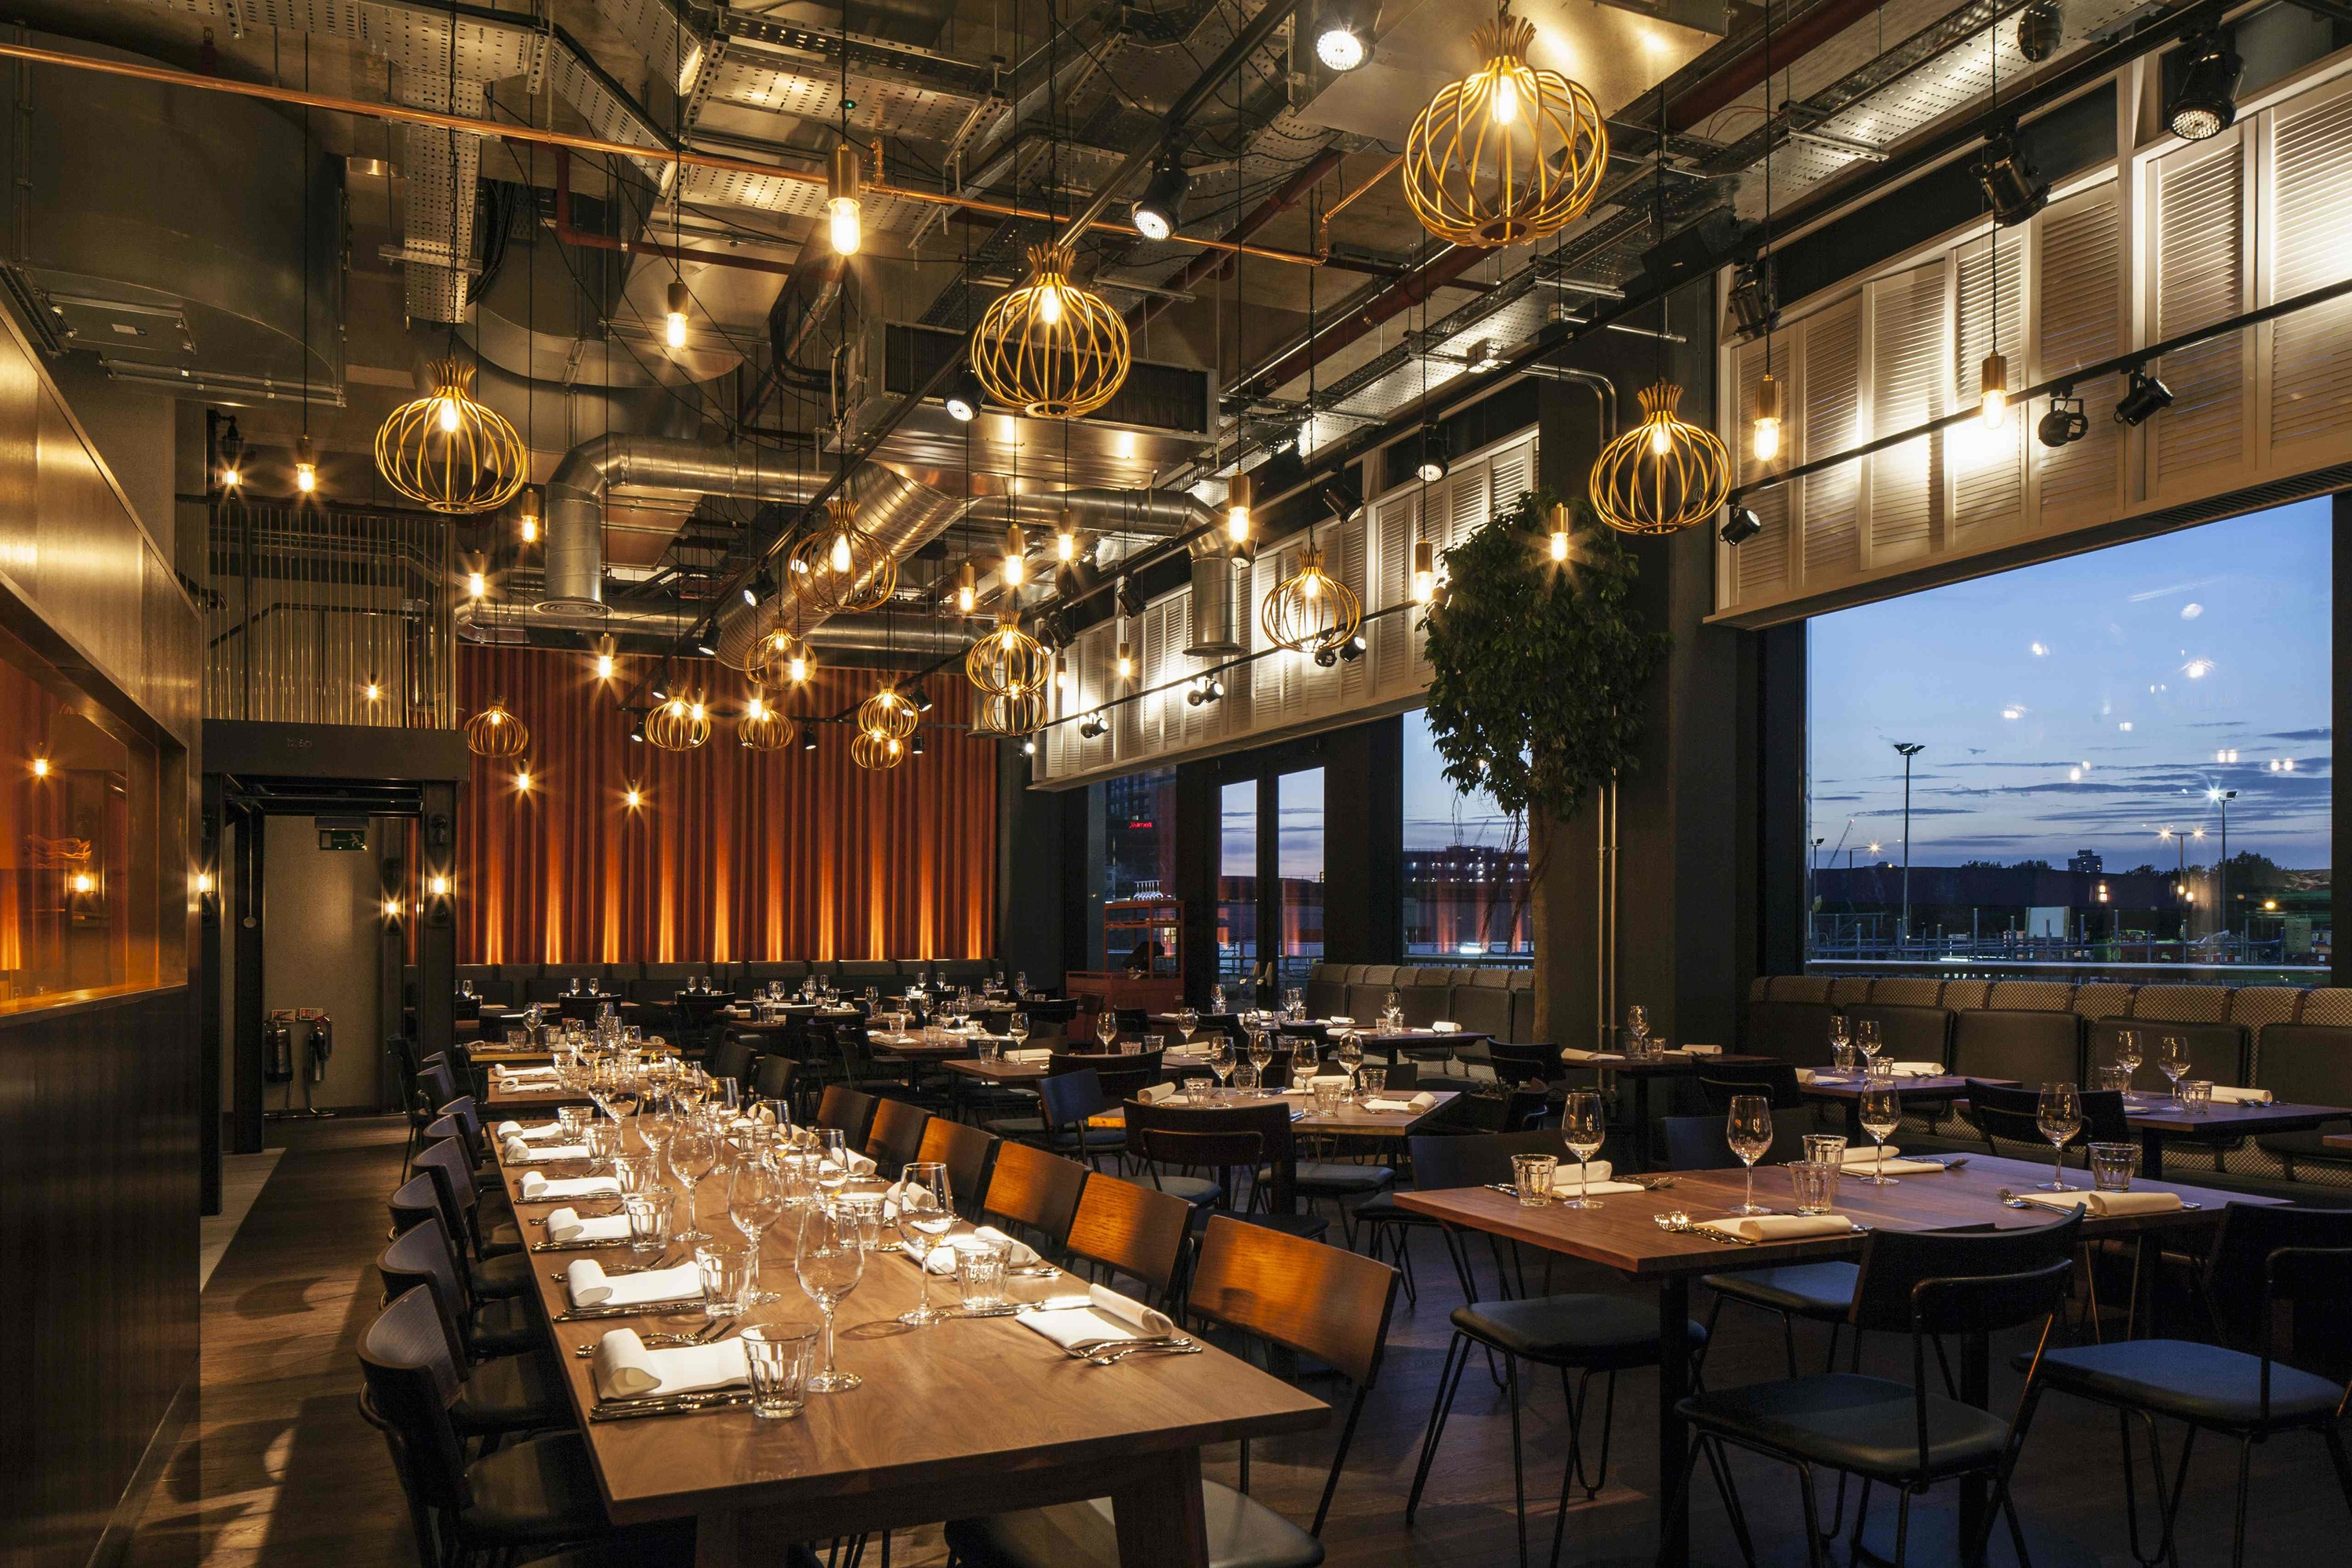 Chai ki restaurants in canary wharf london for Hotel design canaries